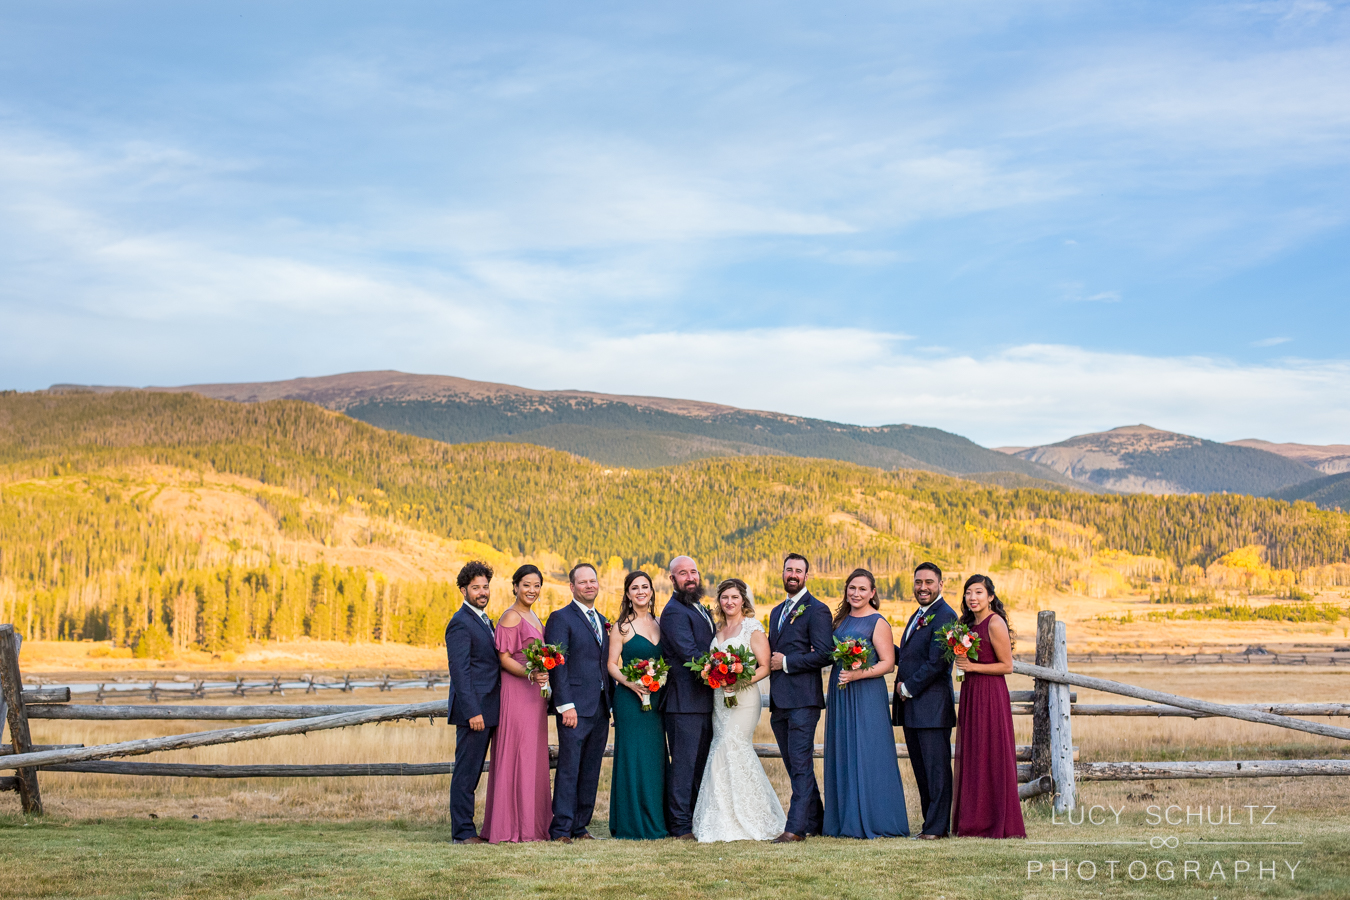 Image by  Lucy Shultz Photography  at Devil's Thumb Ranch